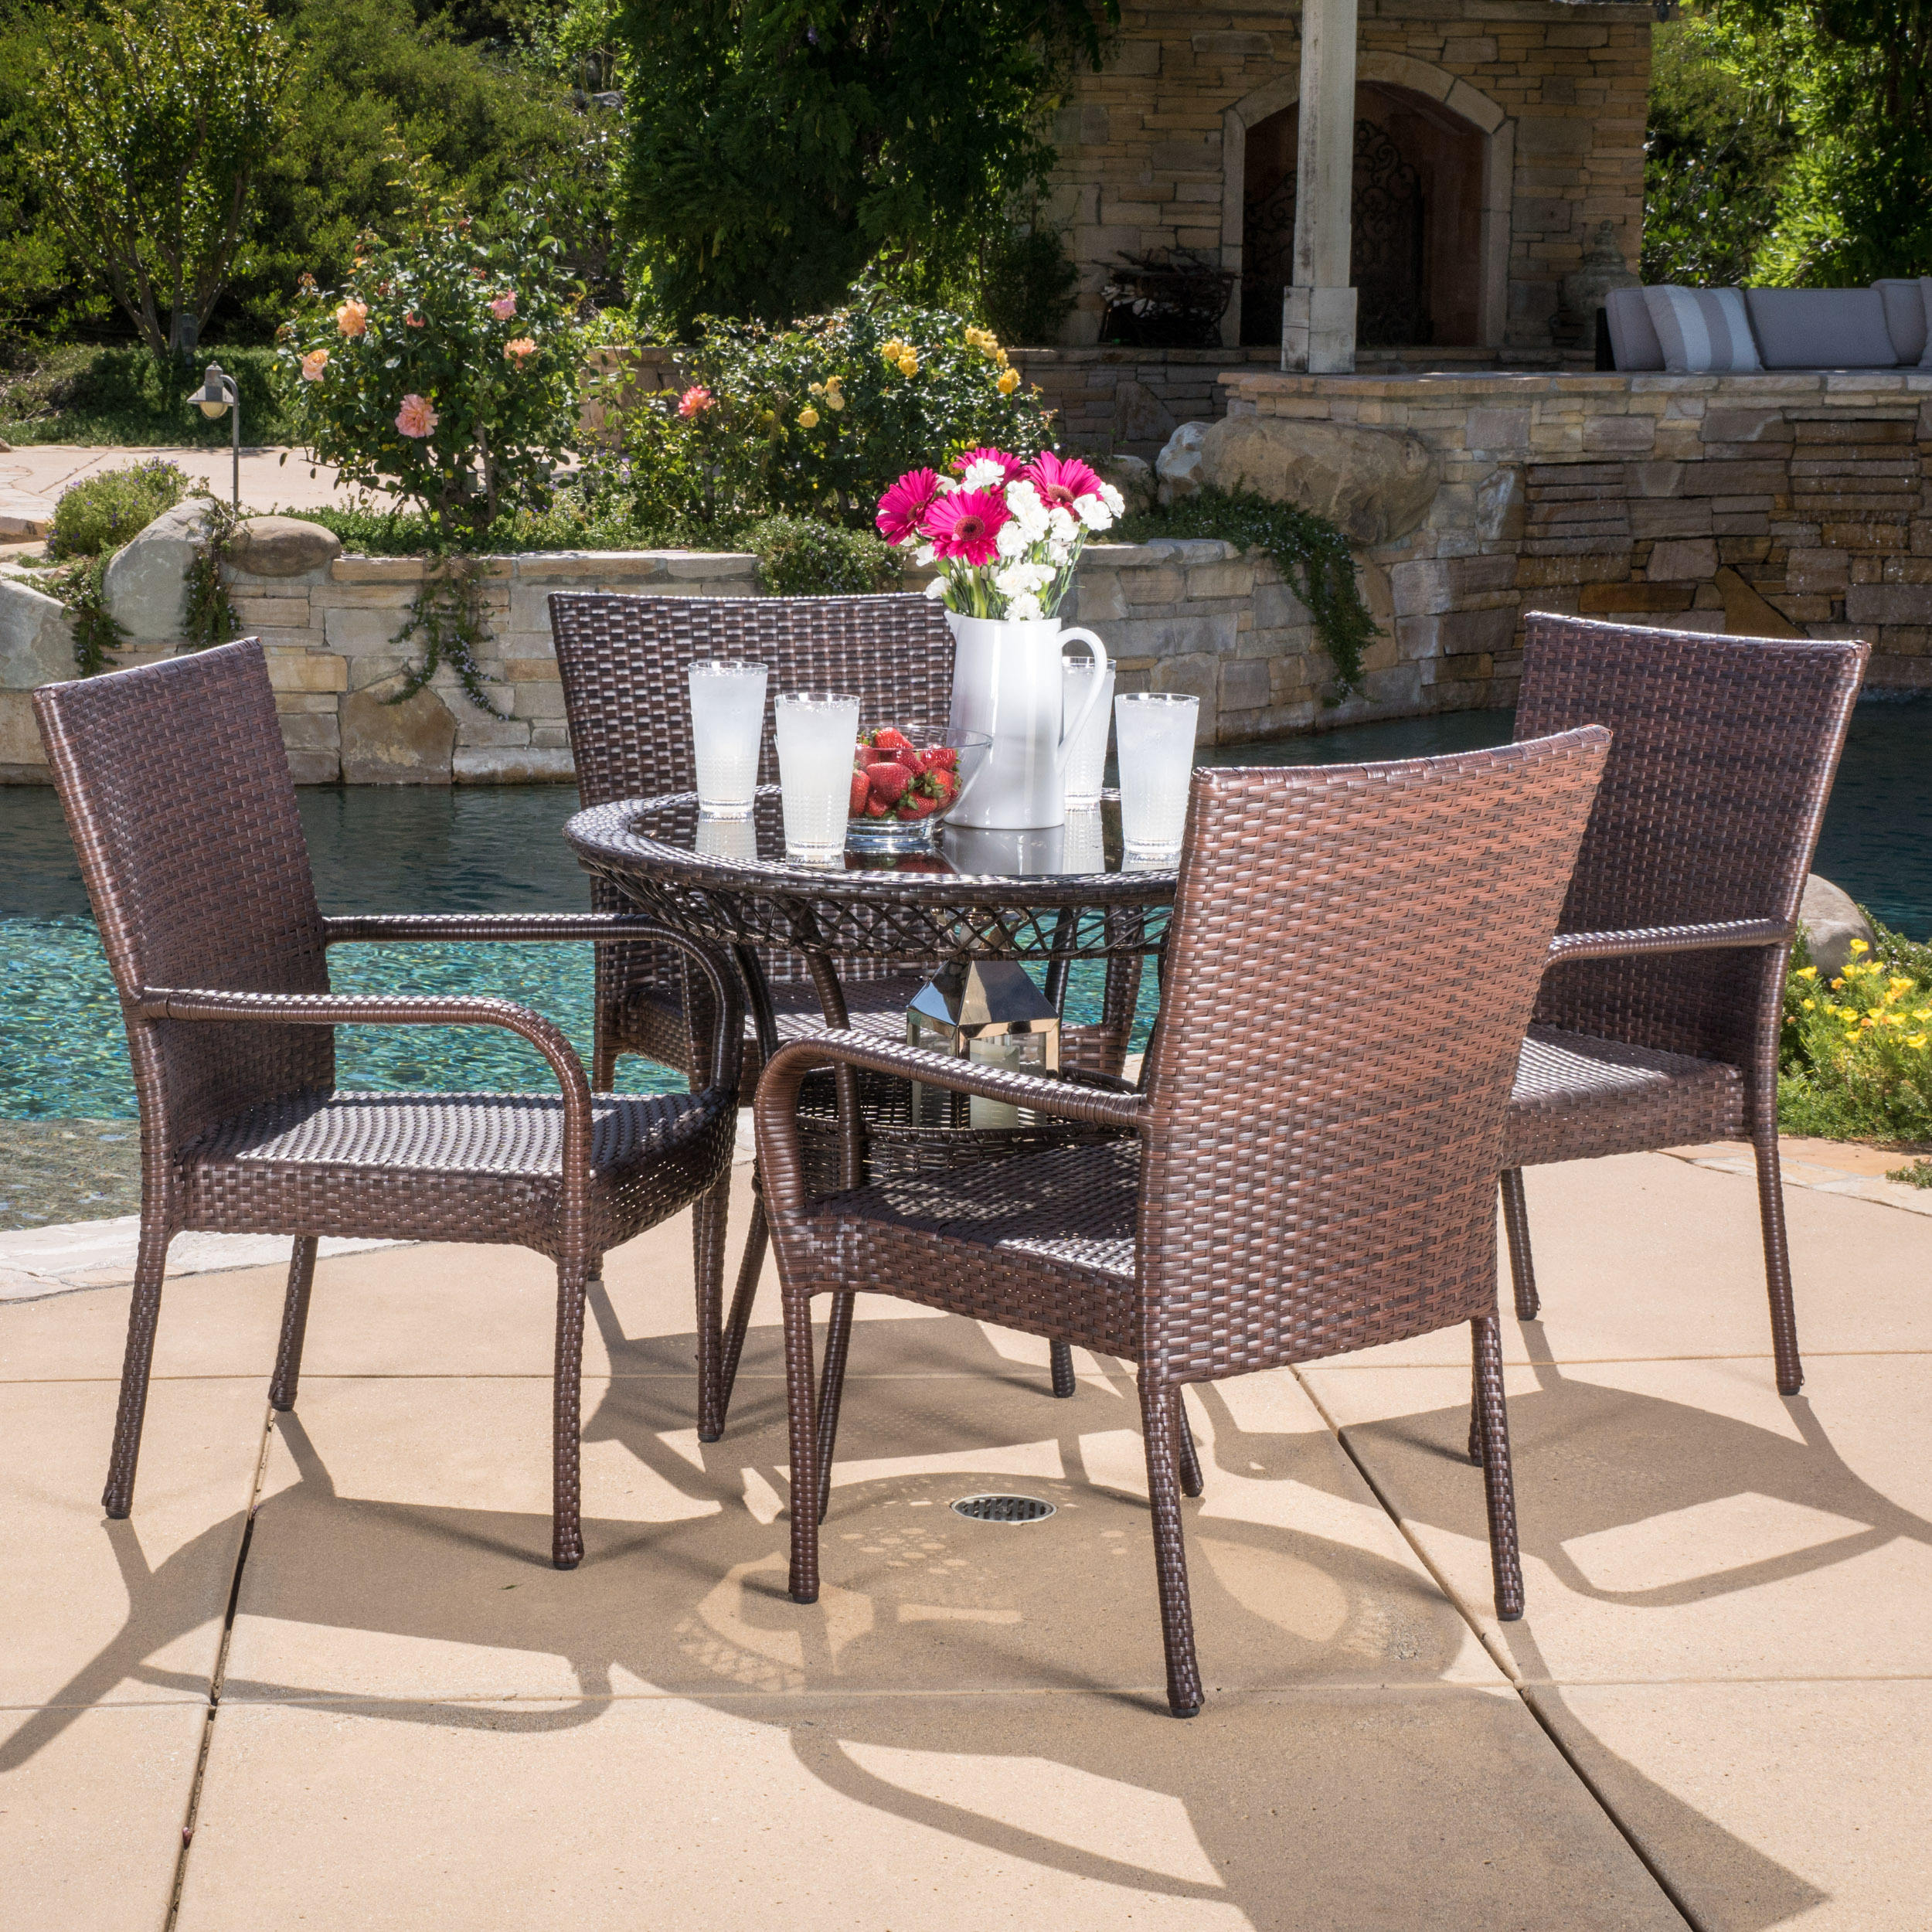 Malone 5 Piece Outdoor Round Glass Top Wicker Dining Set, Multibrown